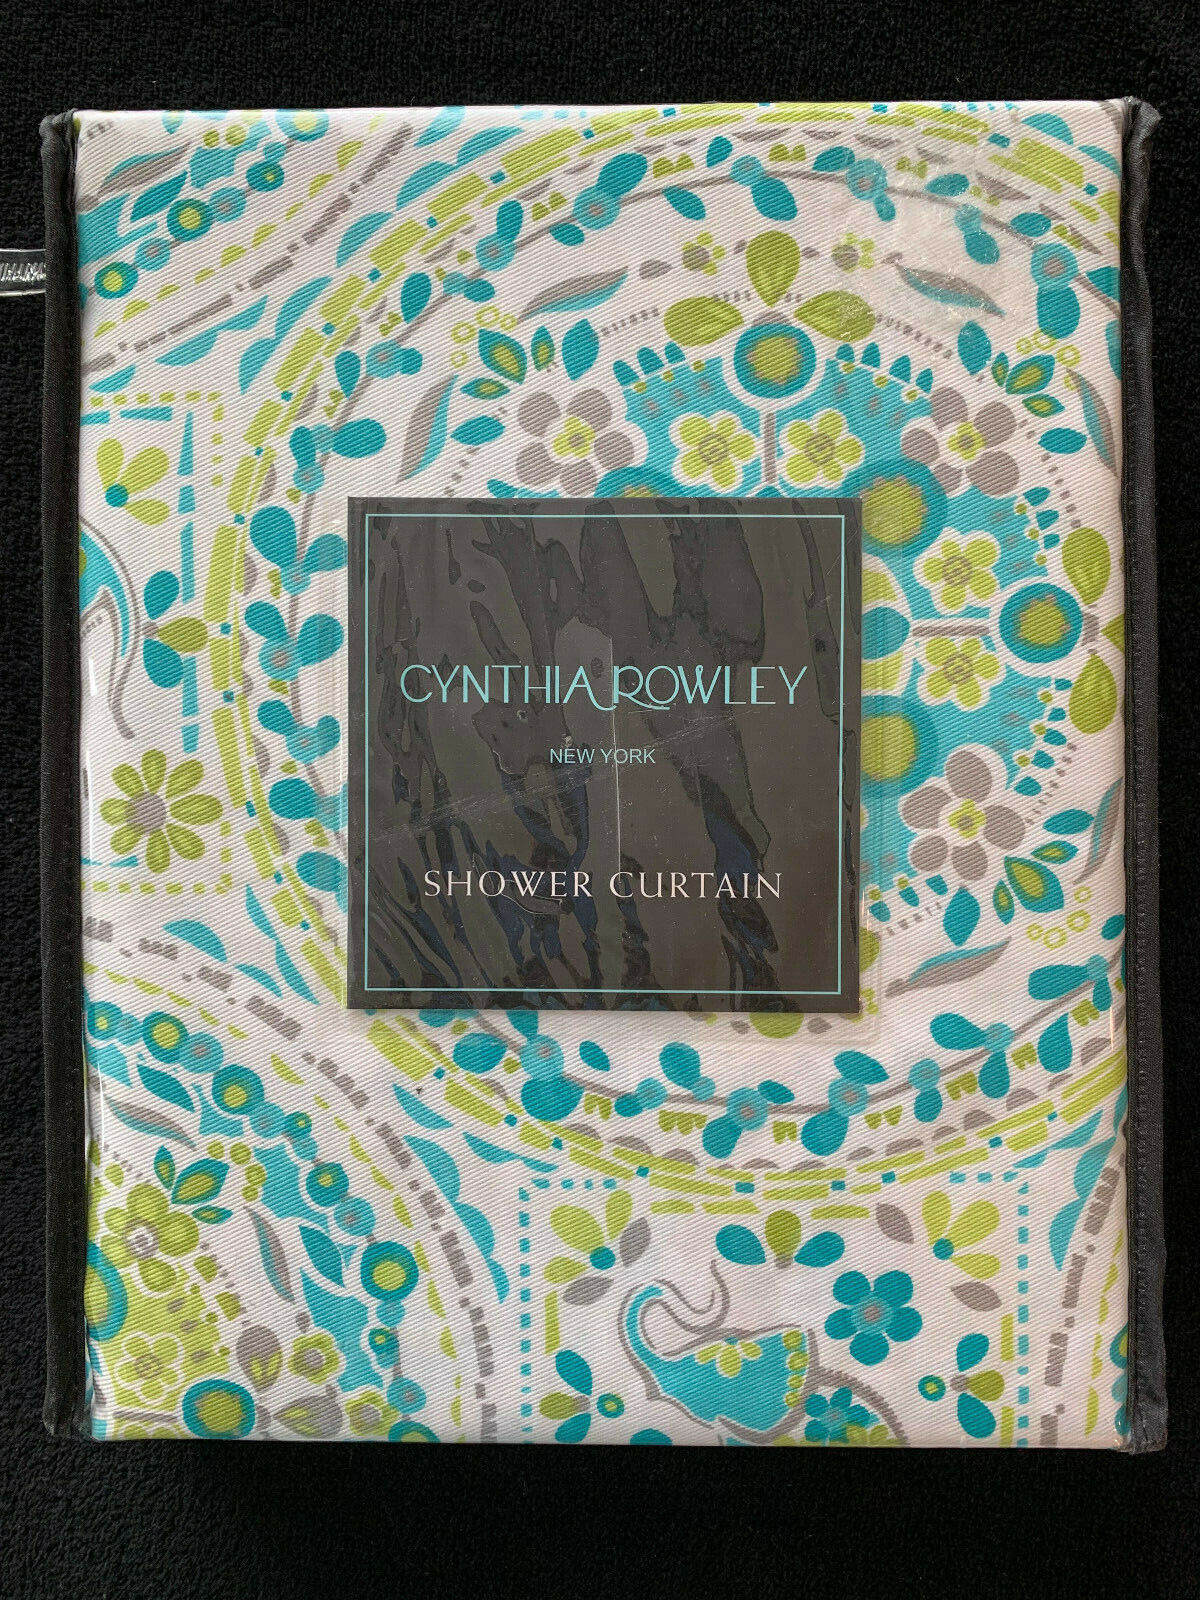 Cynthia Rowley Boho Elephant Shower Curtain Purple Teal Green Yellow For Sale Online Ebay